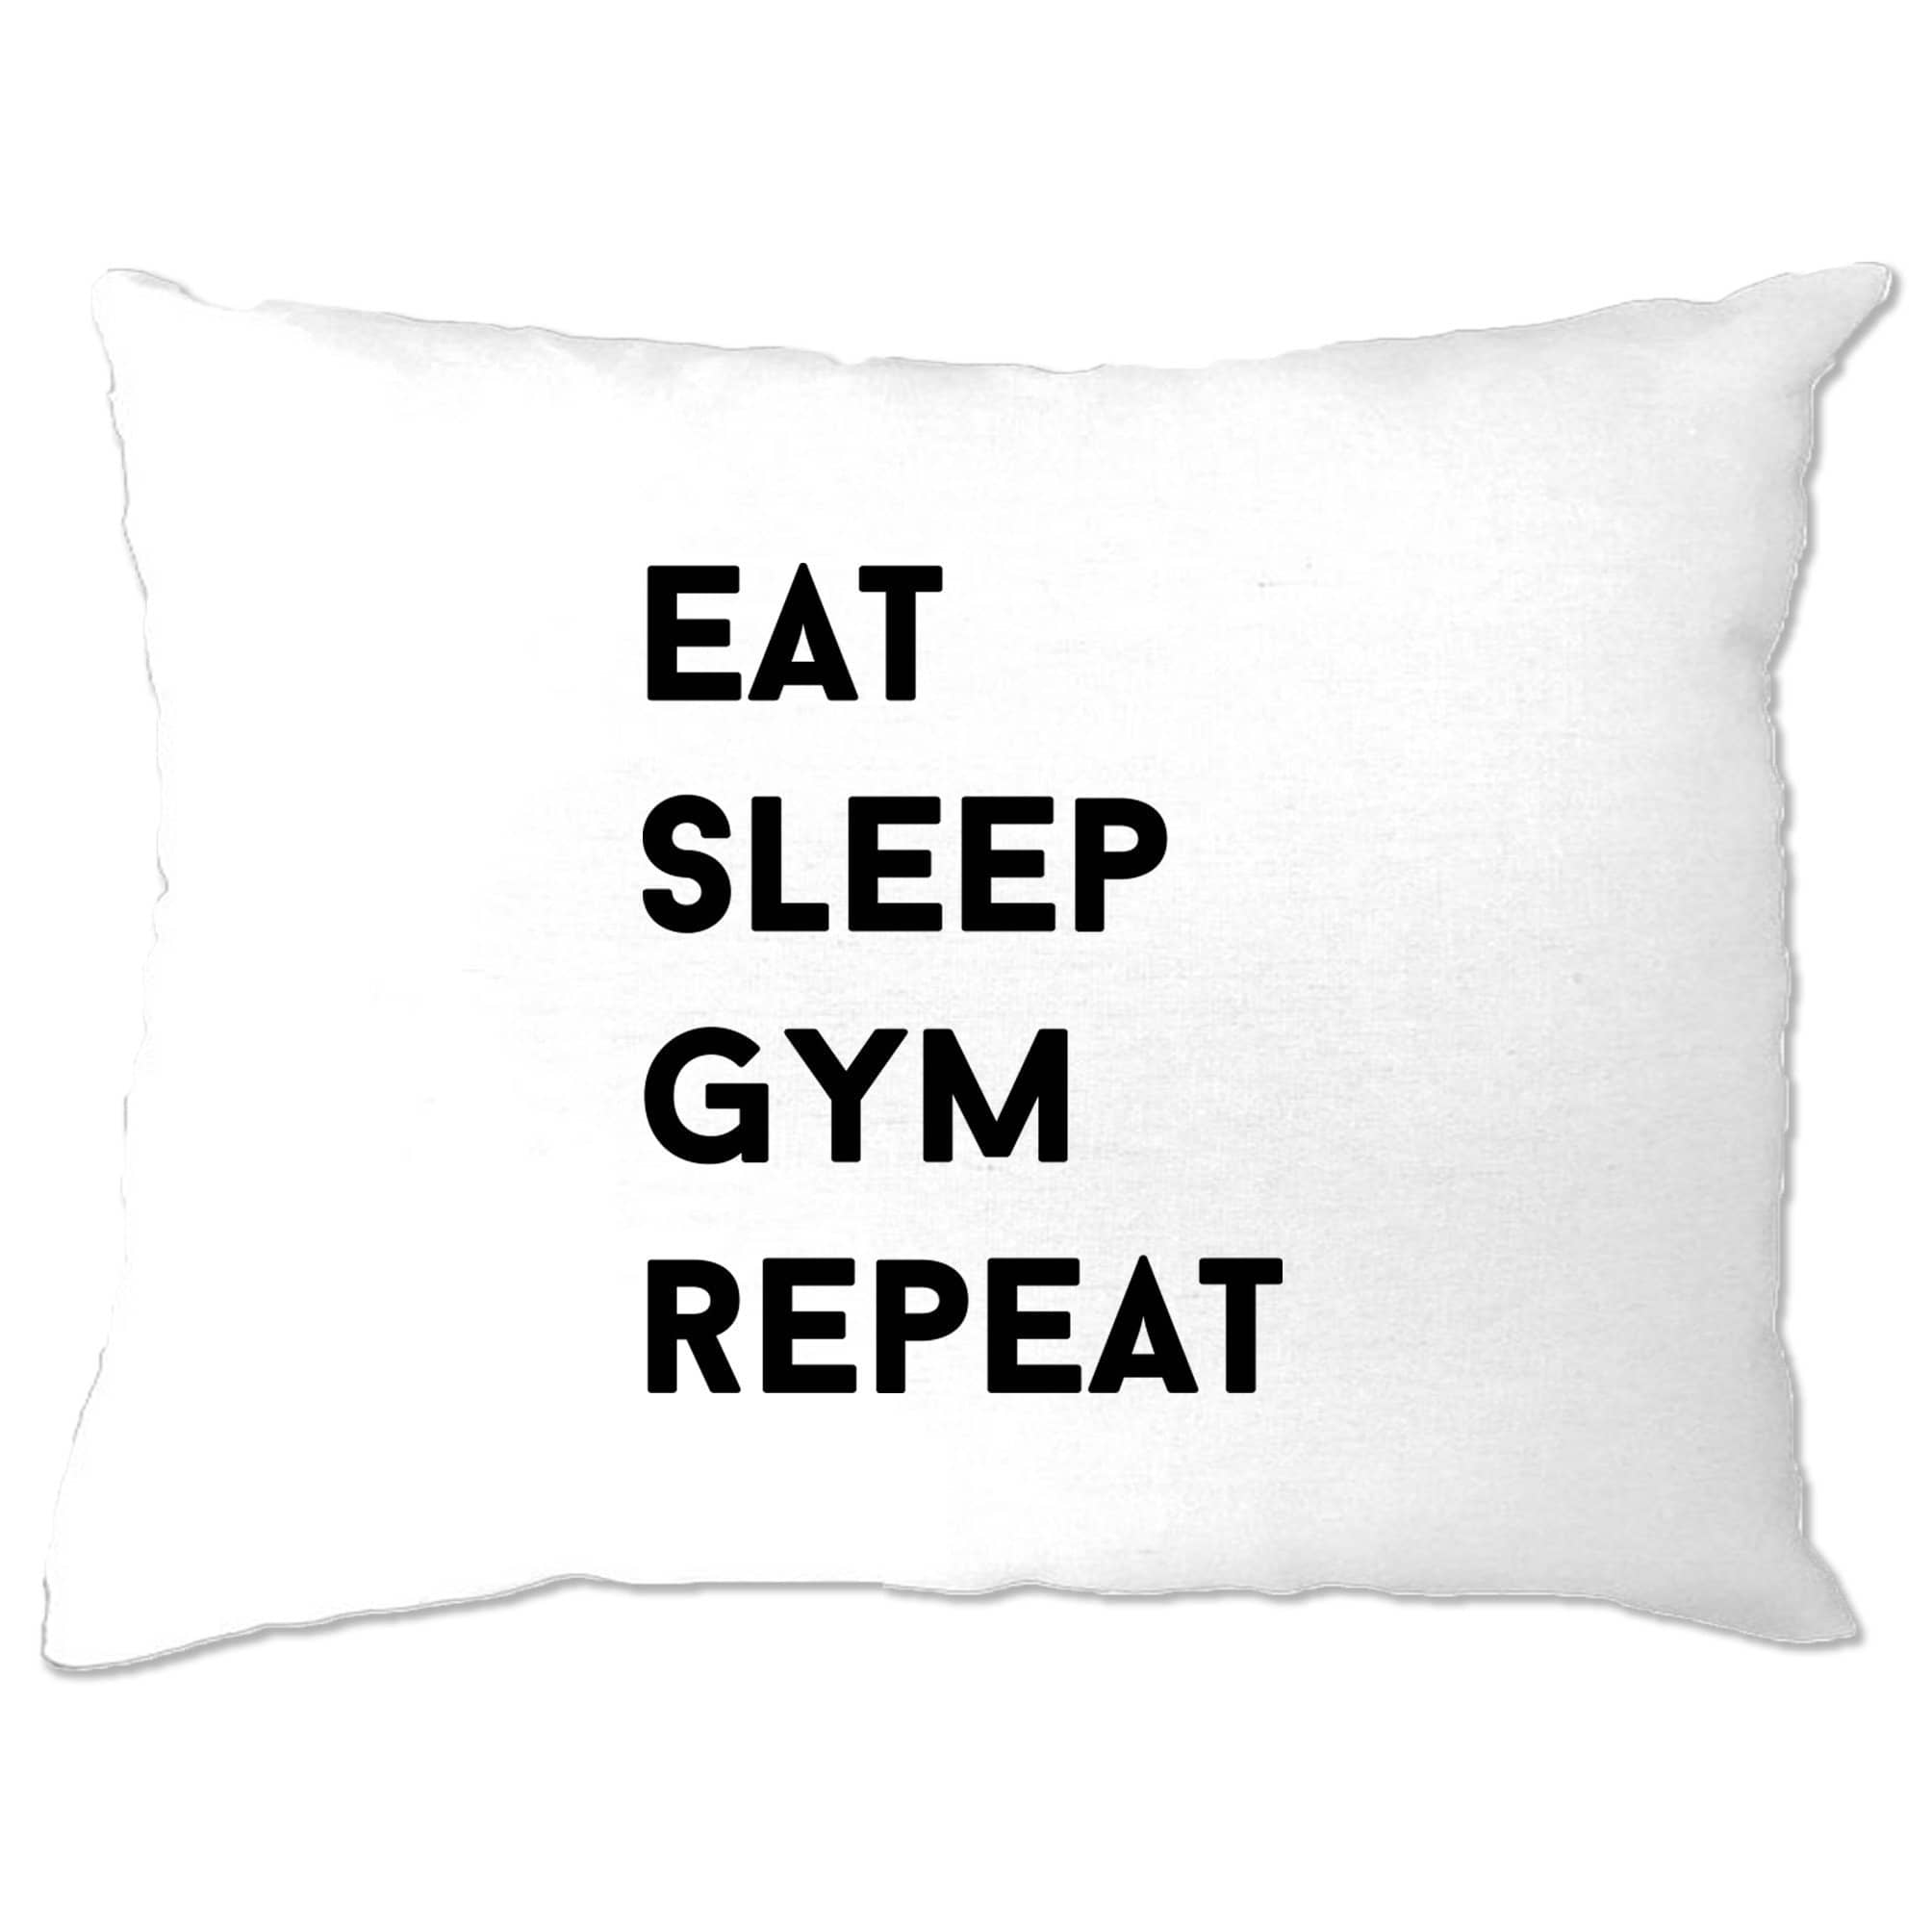 Novelty Pillow Case Eat, Sleep, Gym, Repeat Slogan